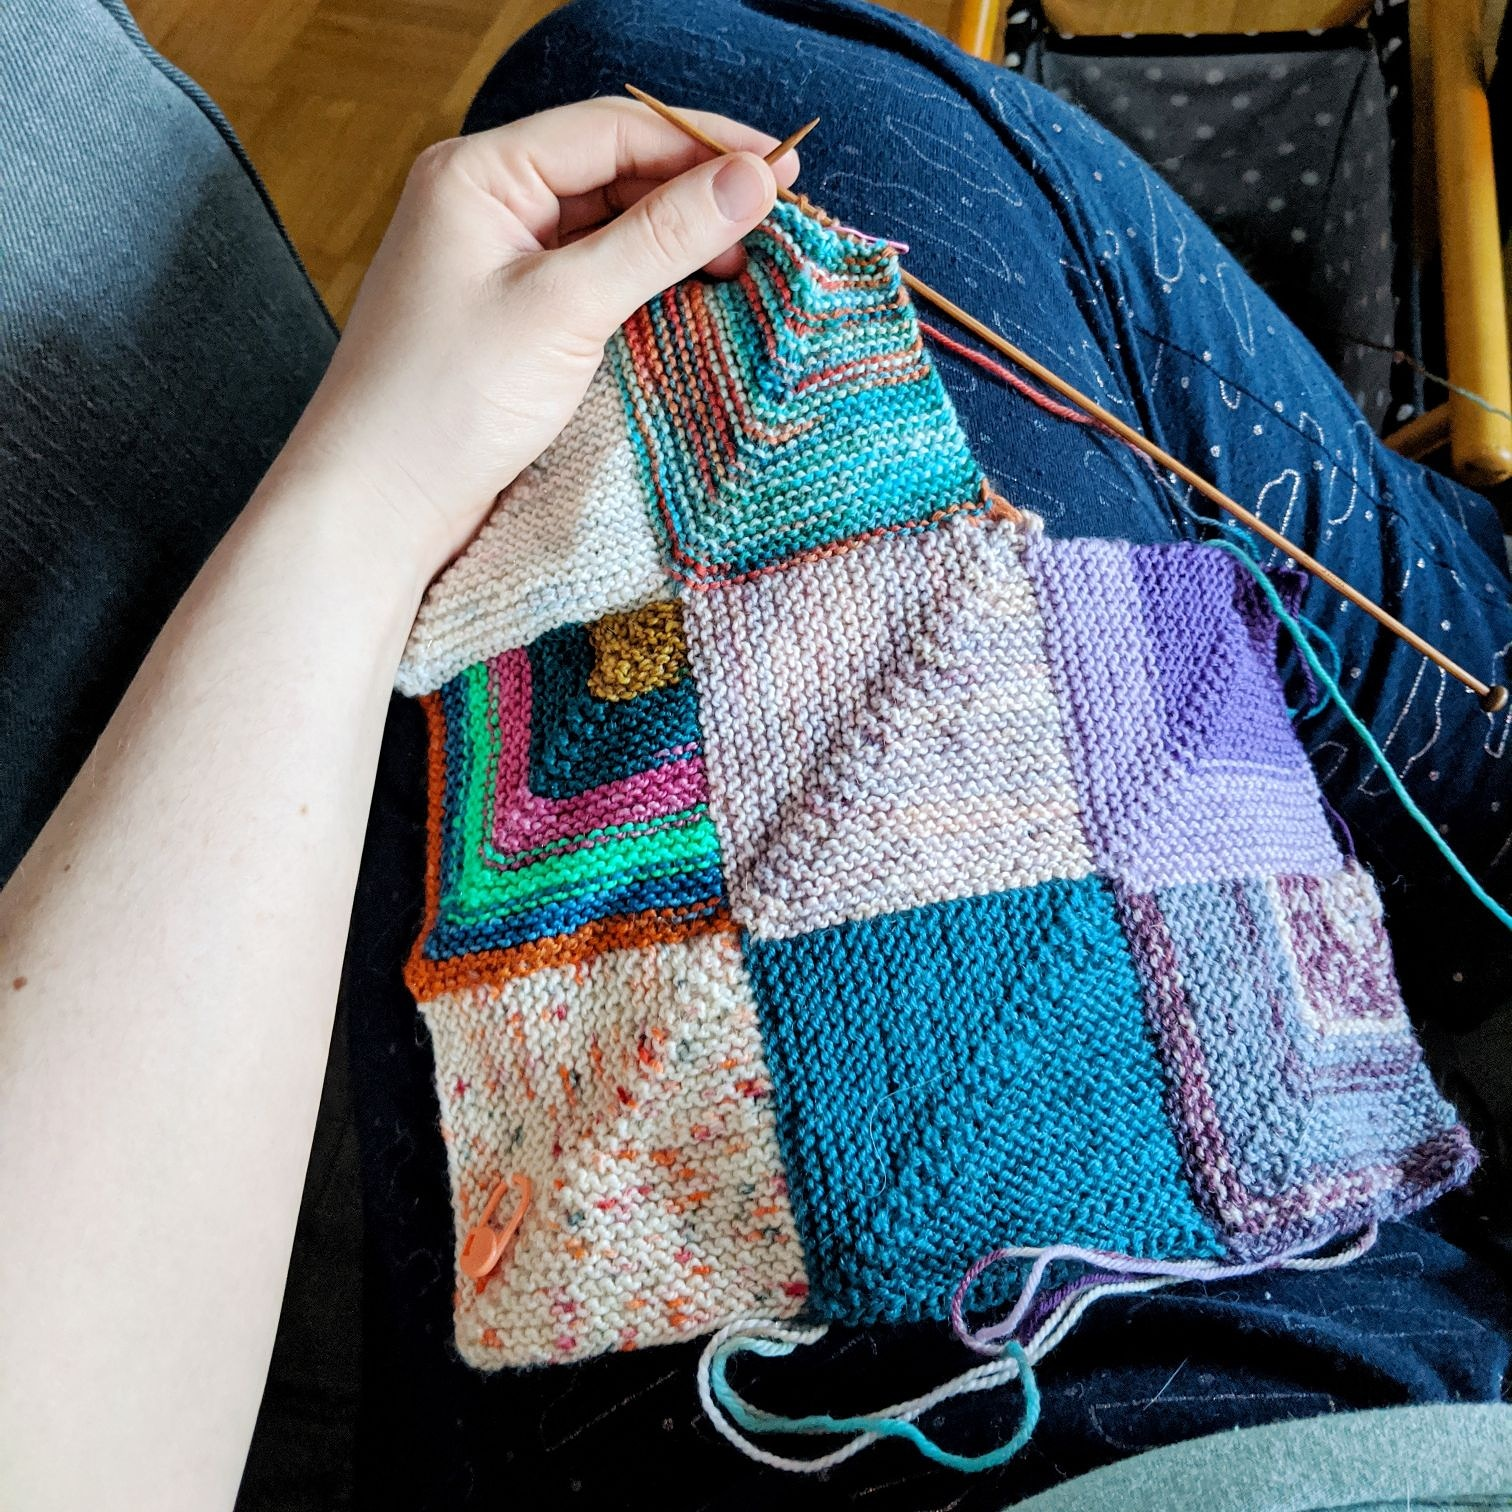 A Caucasian hand holds two knitting needles working on a patchwork blanket